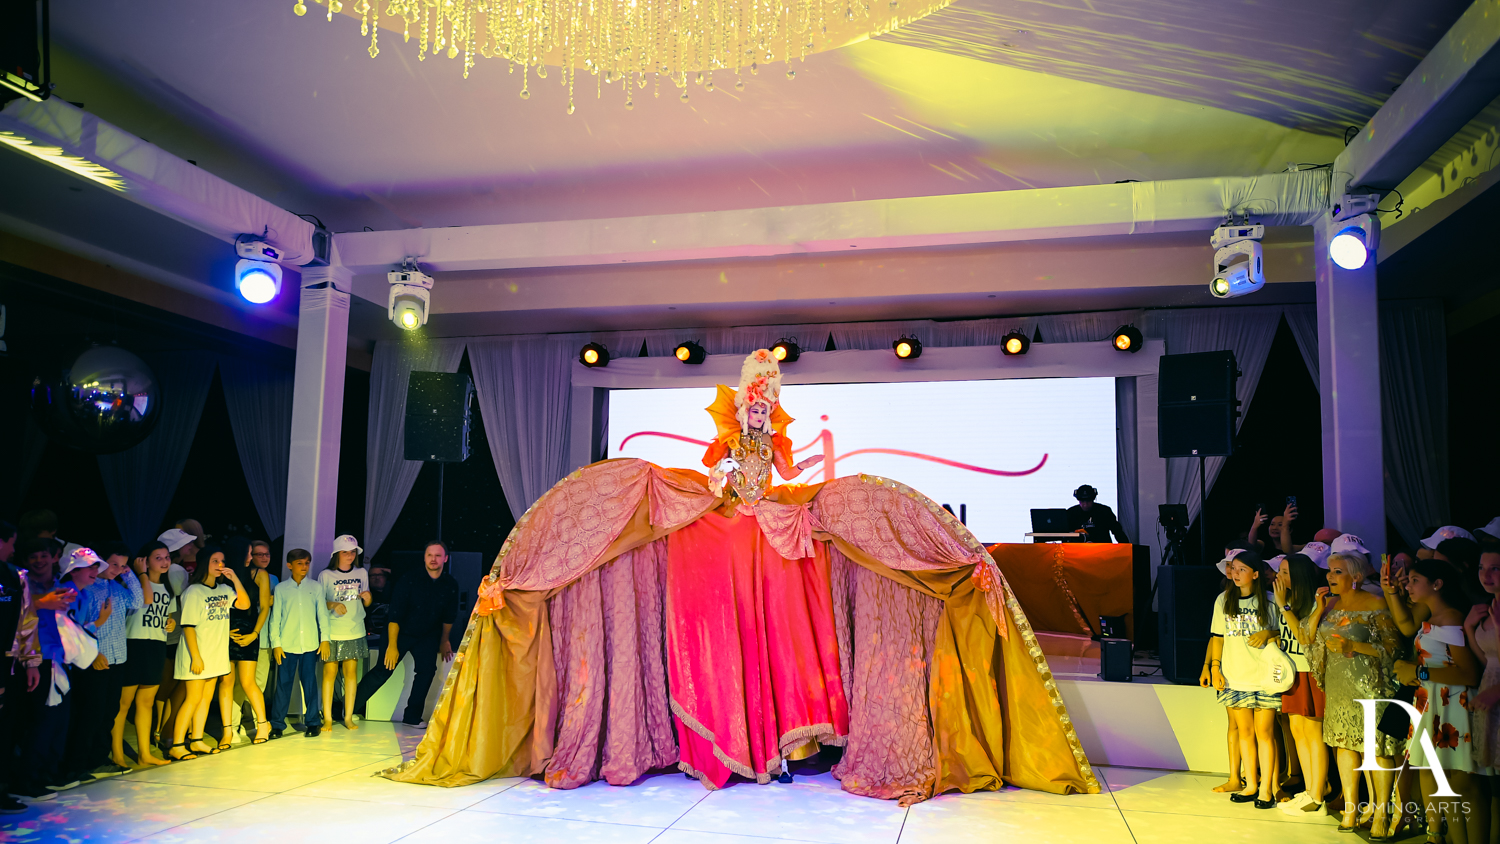 New Century Dance Company at Masquerade Ball Bat Mitzvah at Ritz Carlton Fort Lauderdale by Domino Arts Photography